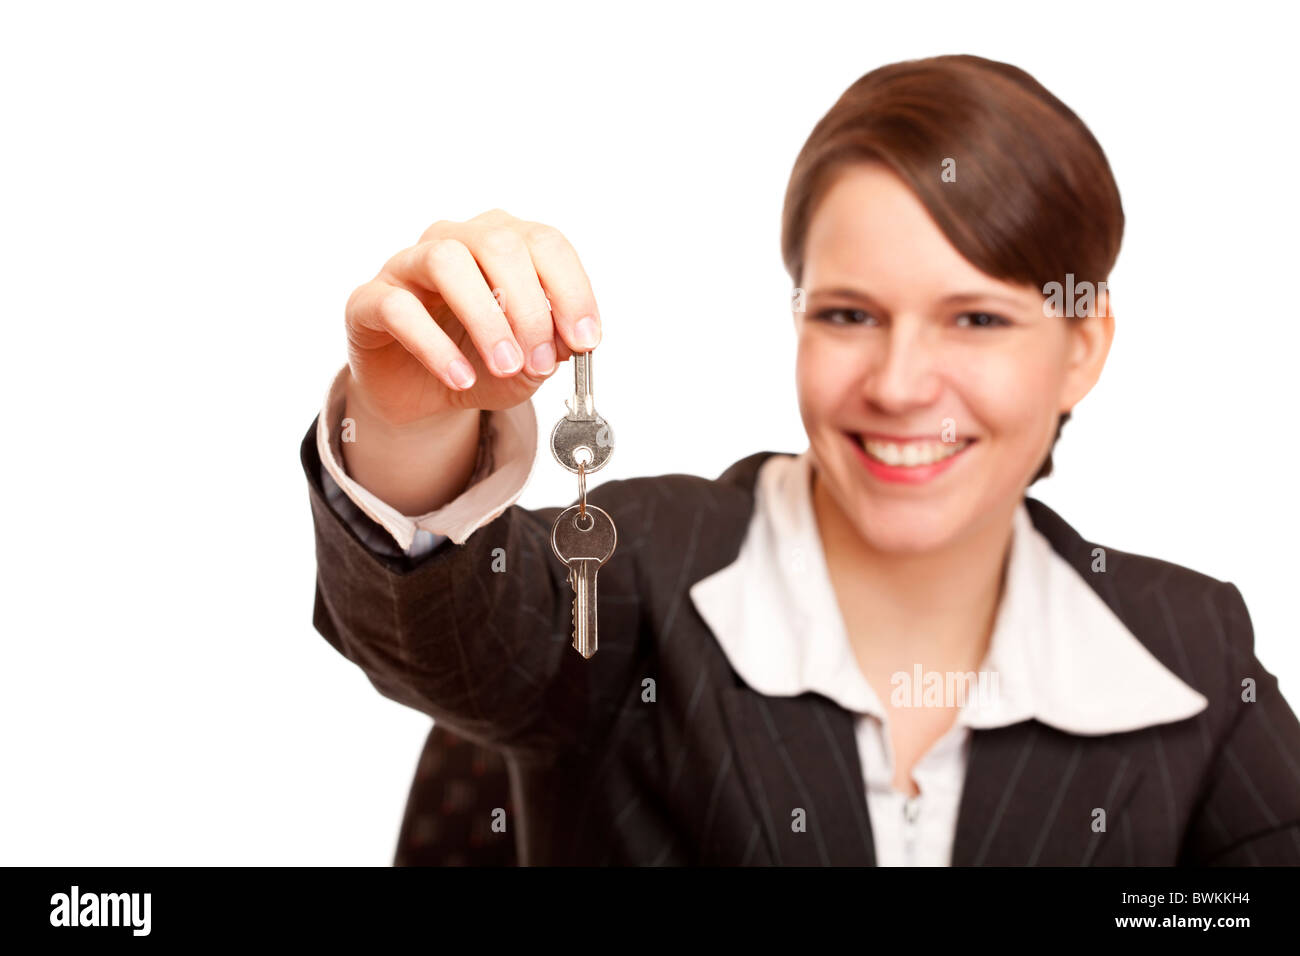 Smiling woman gives over house key. Isolated on white background. - Stock Image